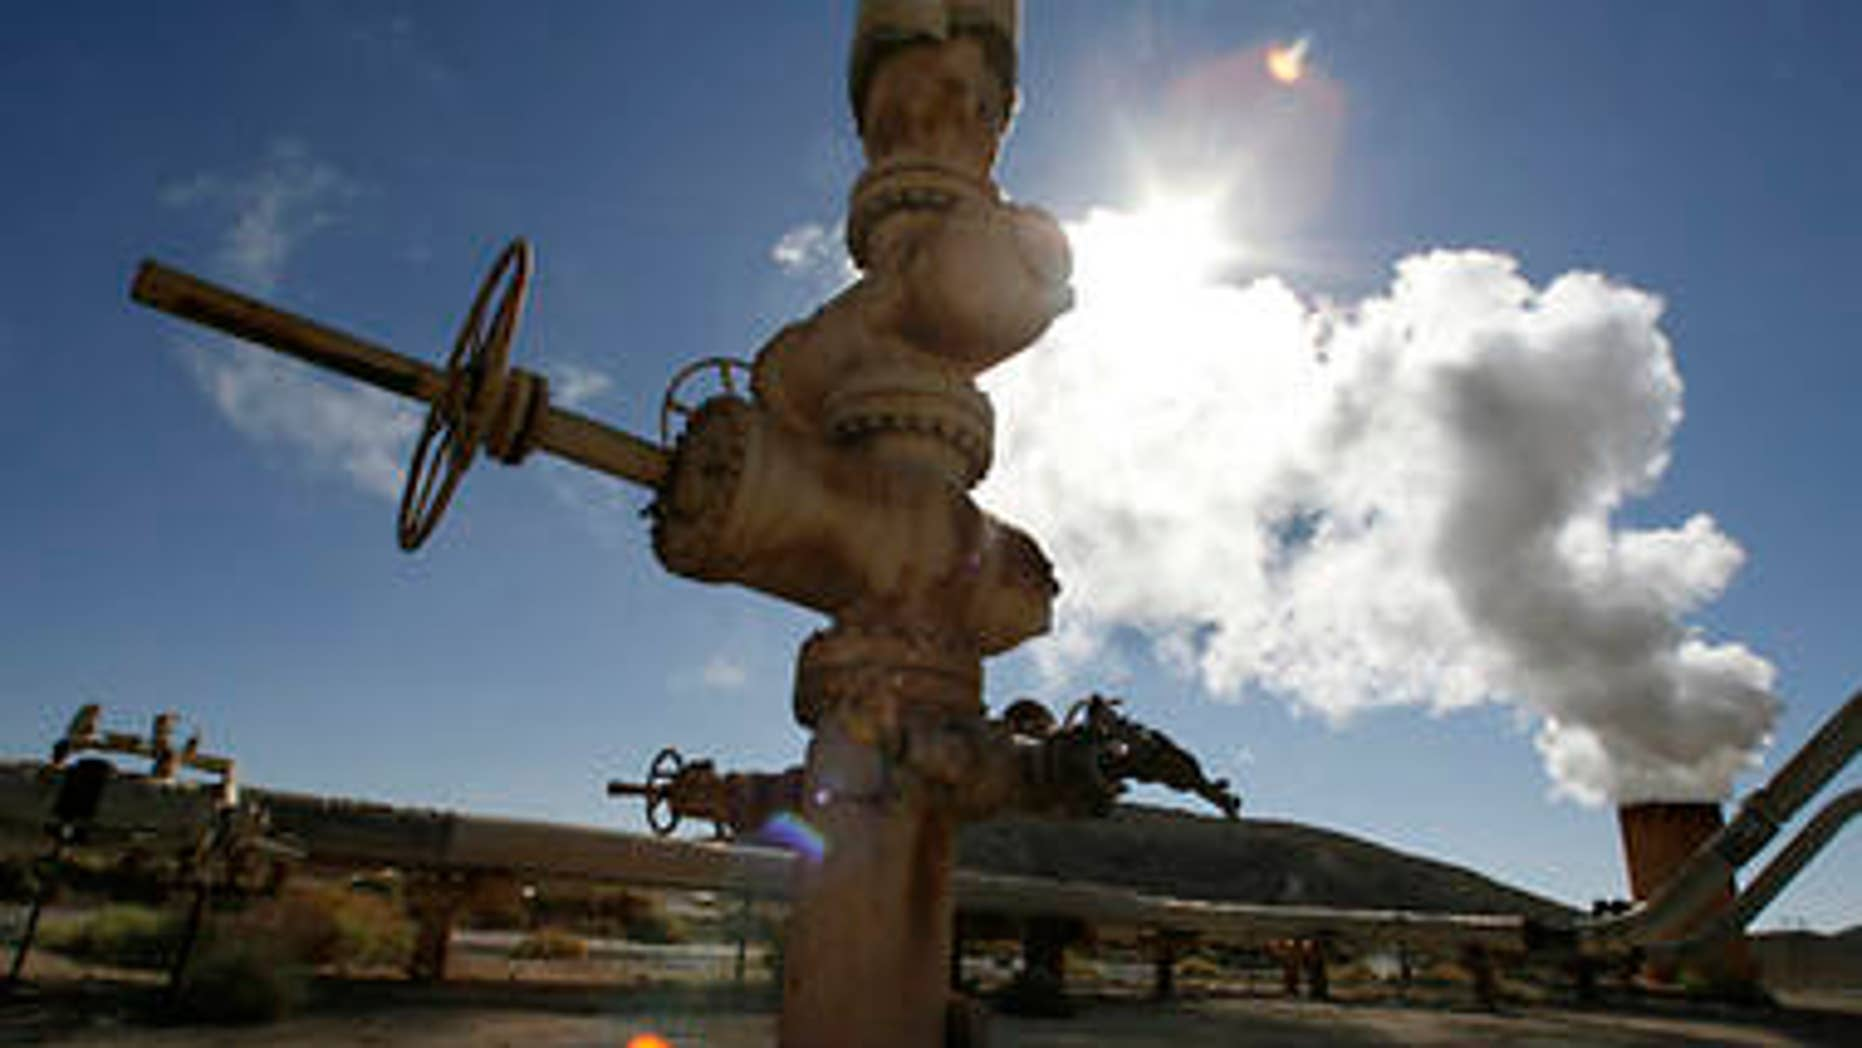 Steam rises during a test from a well at the Coso geothermal field at the China Lake Naval Air Weapons Station in China Lake, California in this July 31, 2008 file photo. California set detailed goals to cut greenhouse gases and address global warming on December 11, 2008 in the face of strong criticism that an economic analysis buttressing the plan was hopelessly optimistic.     REUTERS/Fred Prouser/Files        (UNITED STATES)